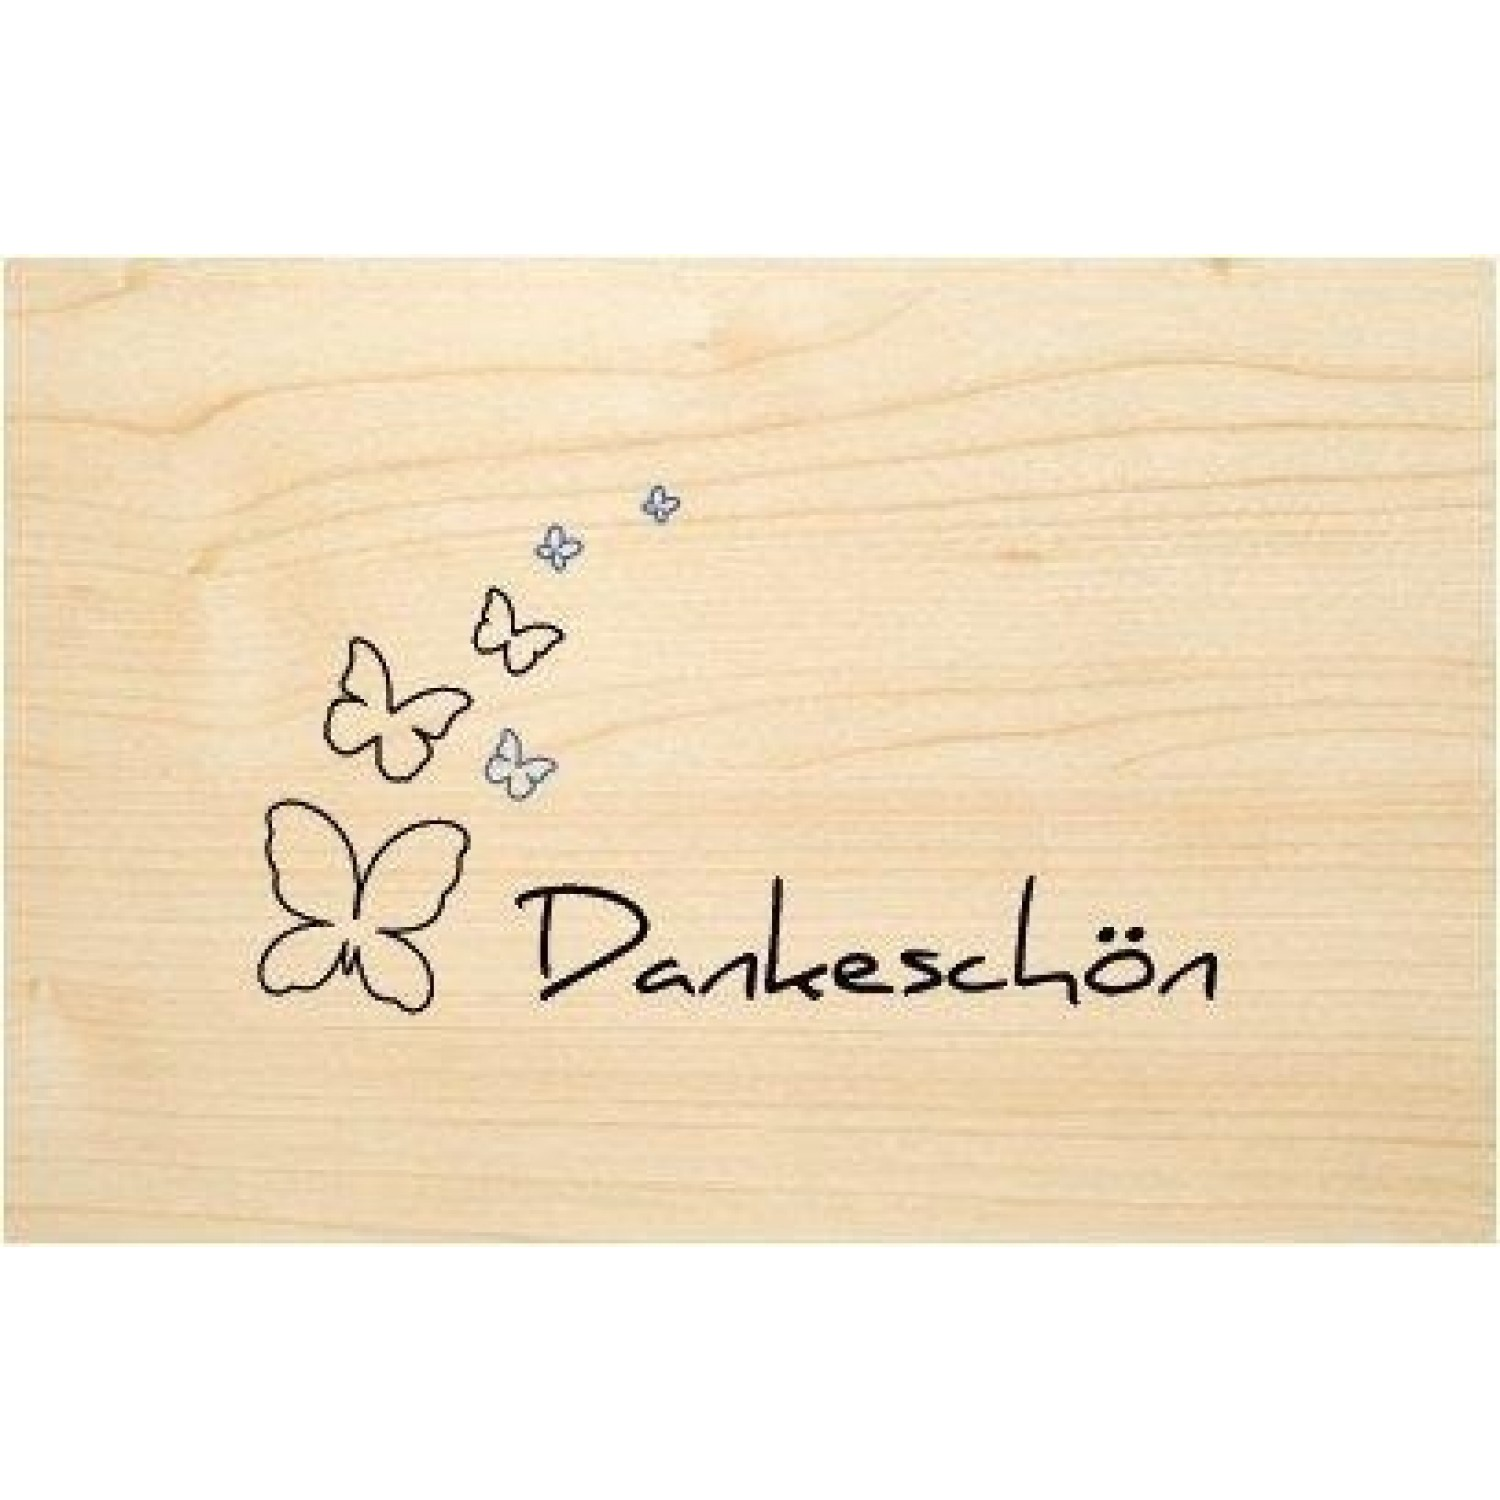 Thank you in German - eco wooden postcard | Biodora